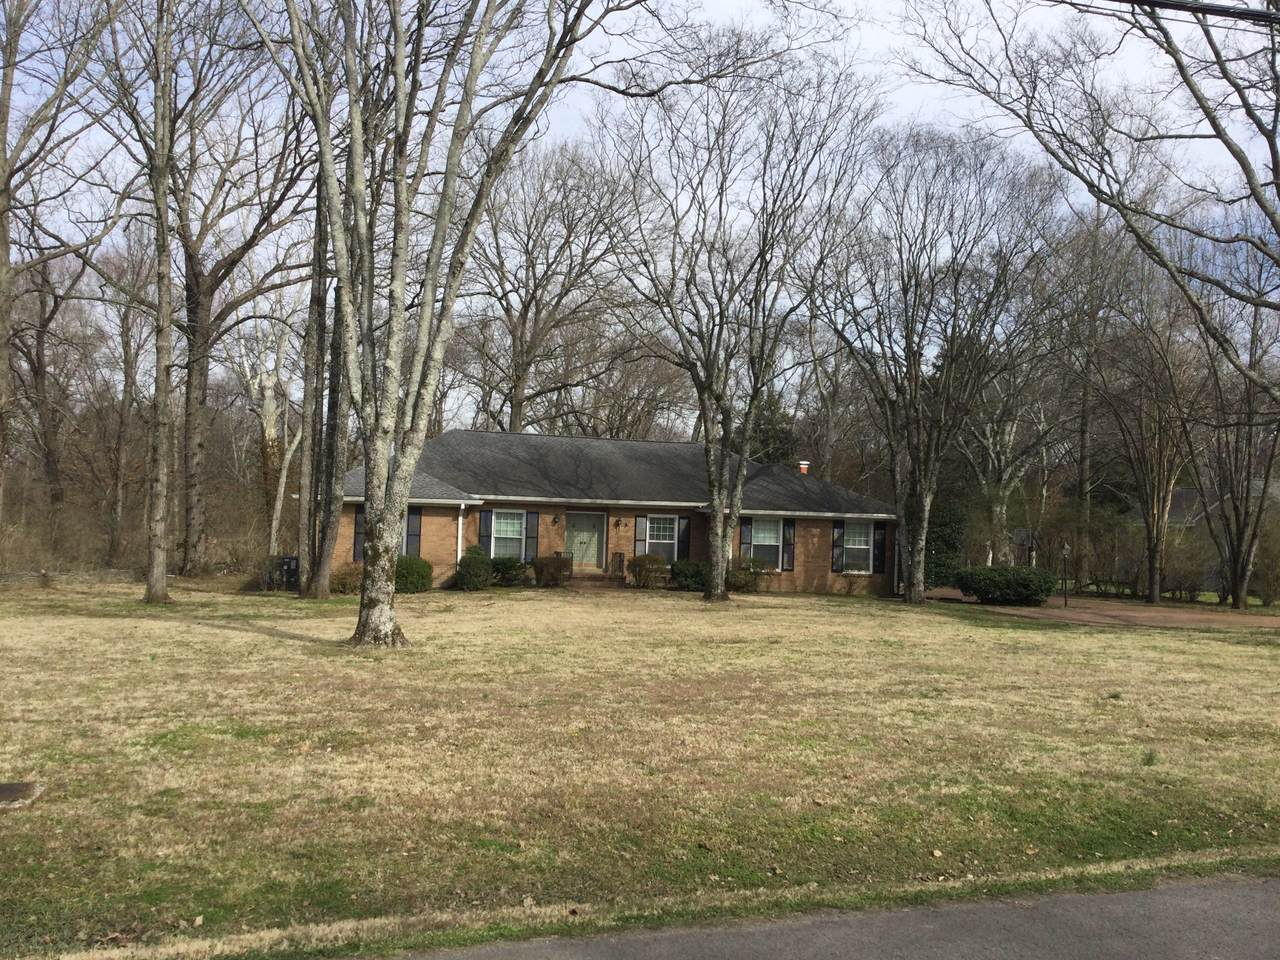 212 W Meade Dr - Photo 1